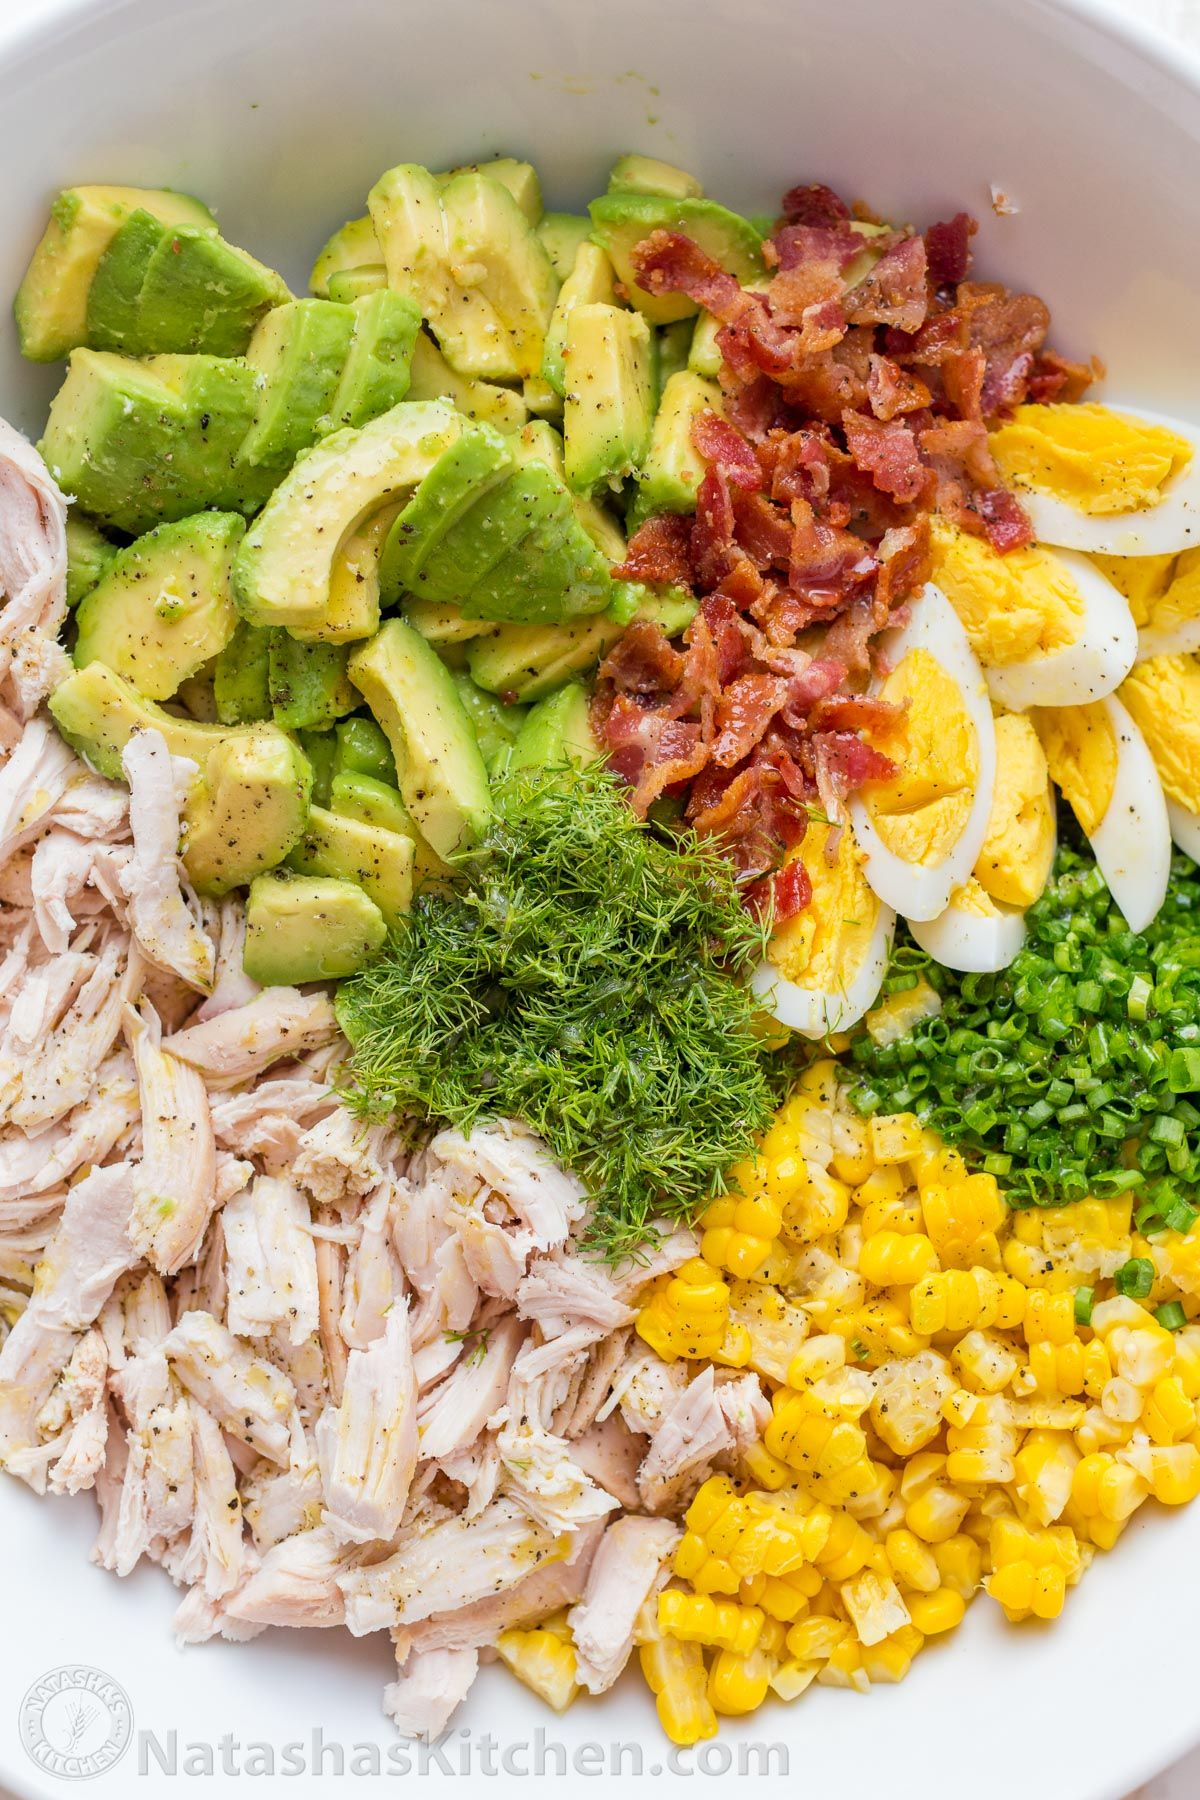 This Avocado Chicken Salad Recipe Is A Keeper Easy Excellent Chicken Salad With Lemon Dres Avocado Chicken Salad Recipe Chicken Salad Recipes Healthy Recipes